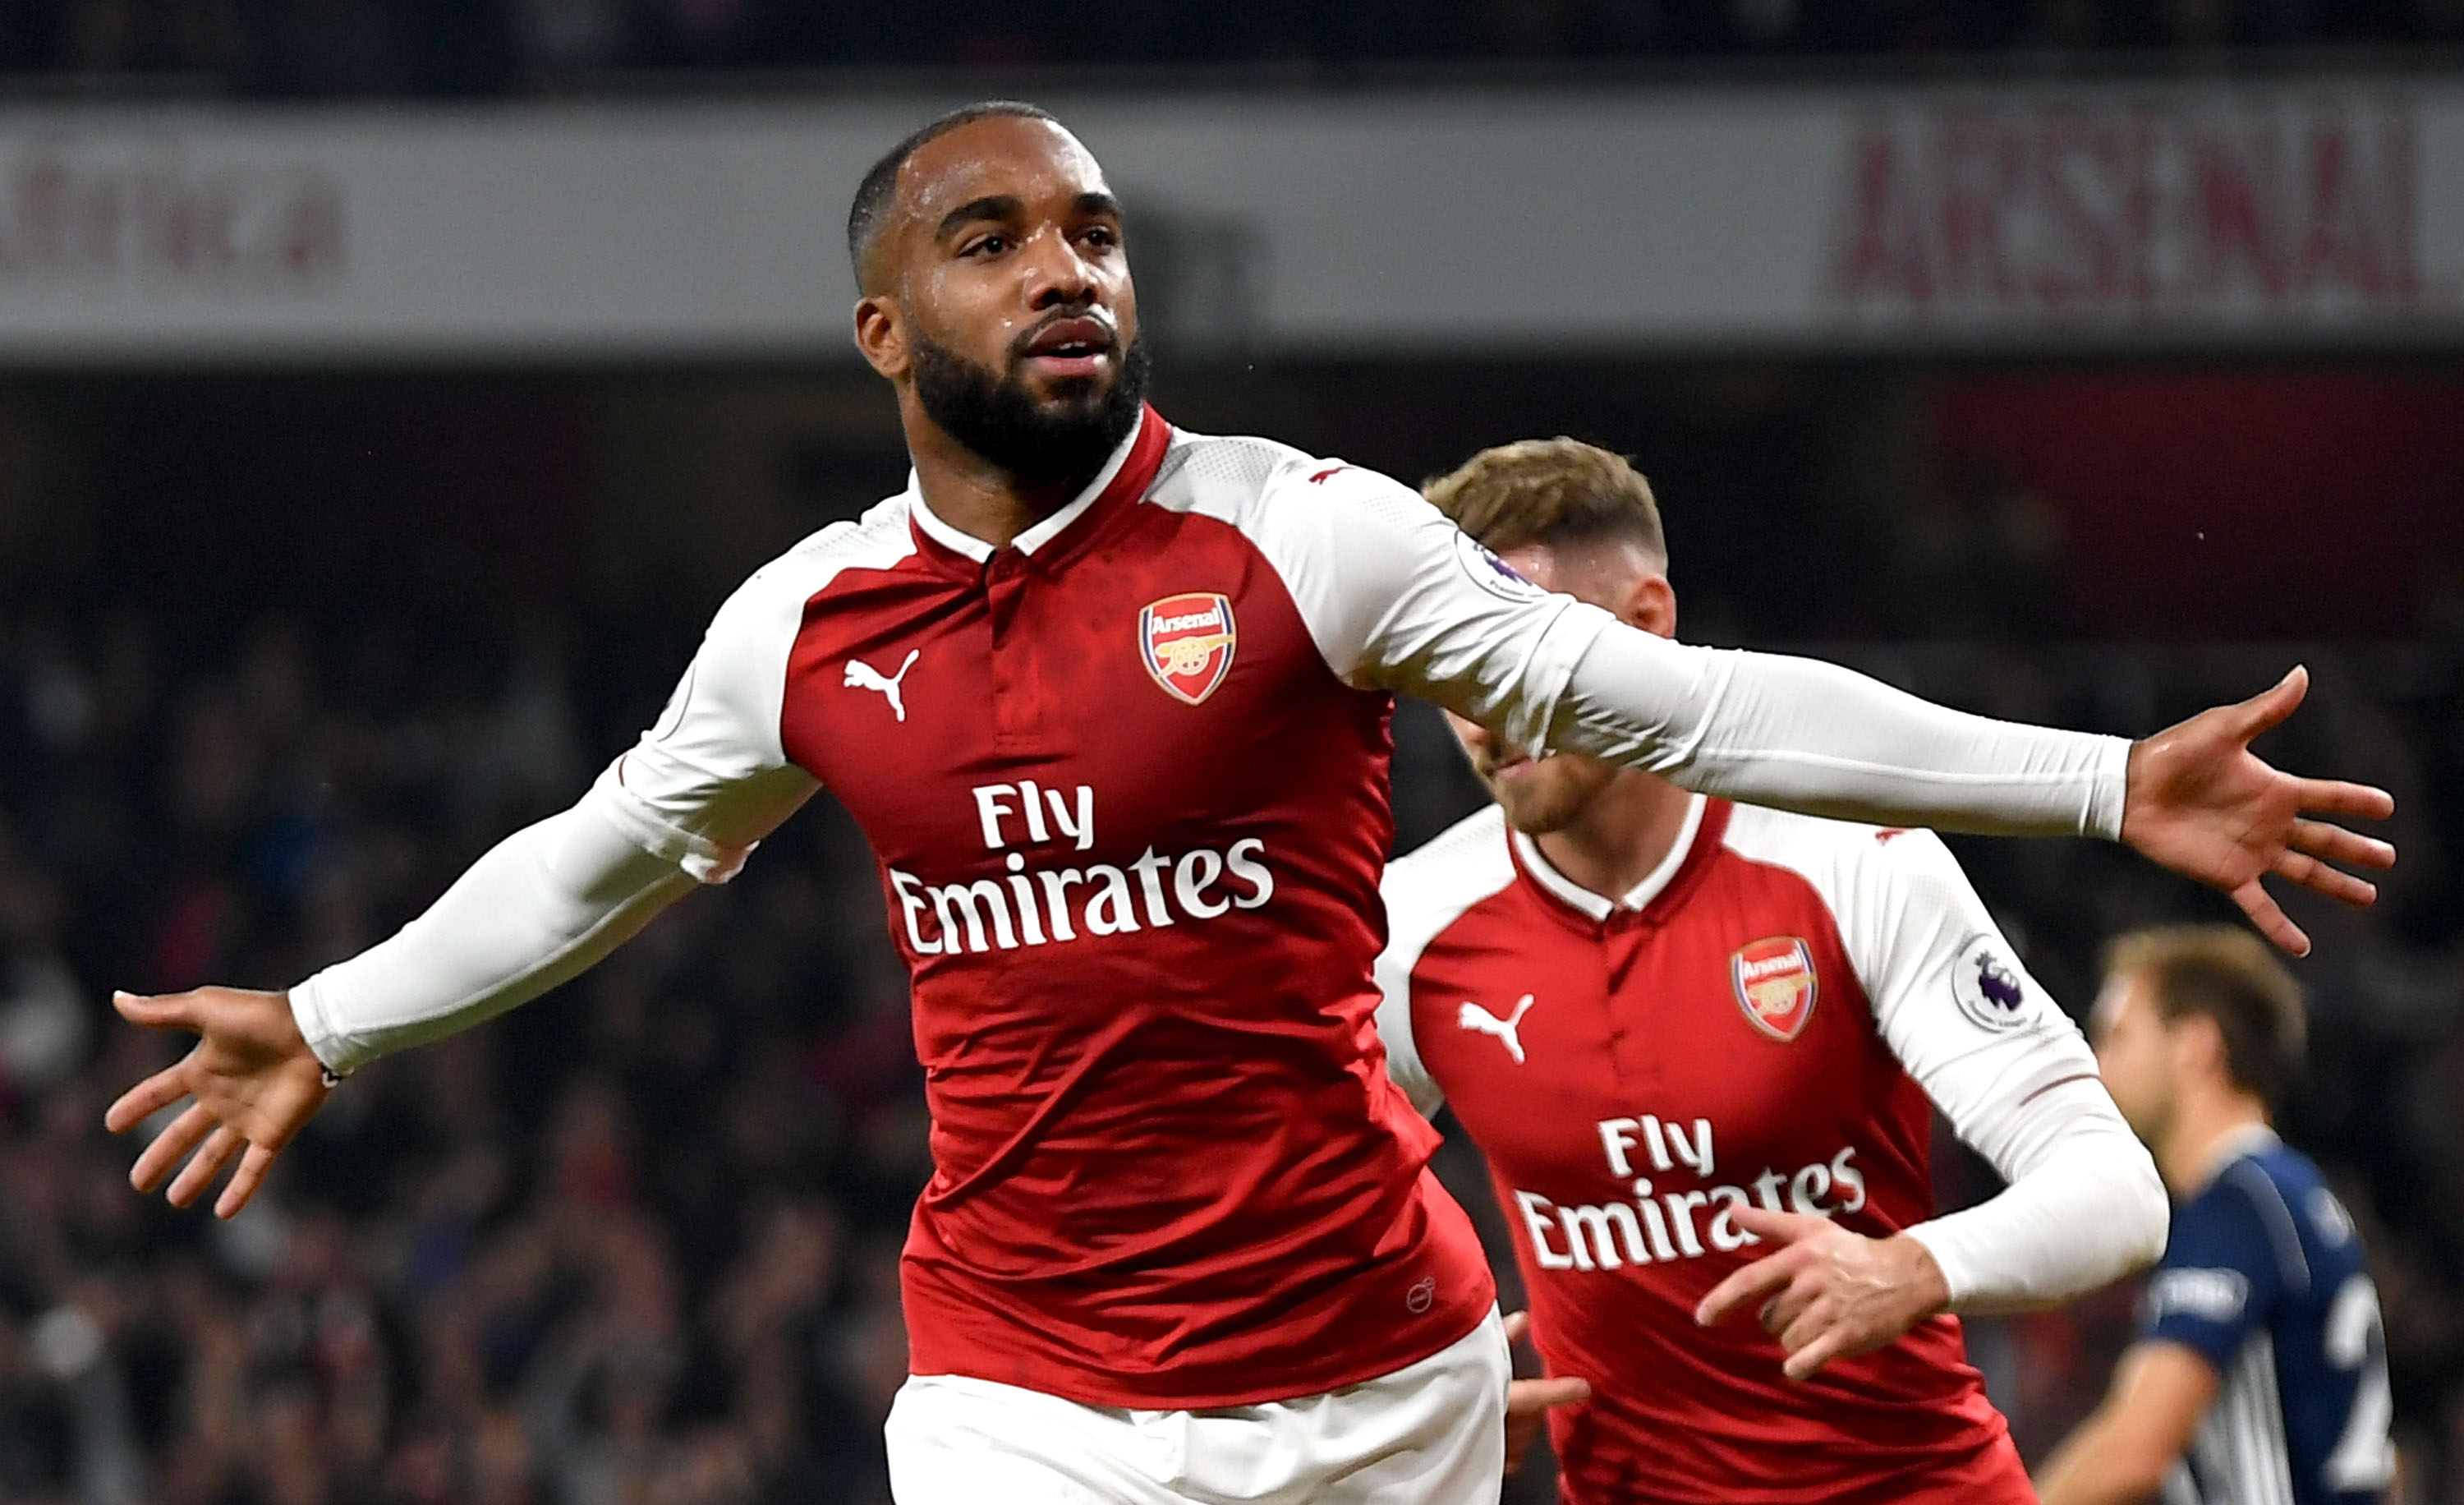 Mesut Ozil Wallpapers Hd Arsenal Betting Huge Price Boosts On Arsenal And Lacazette For